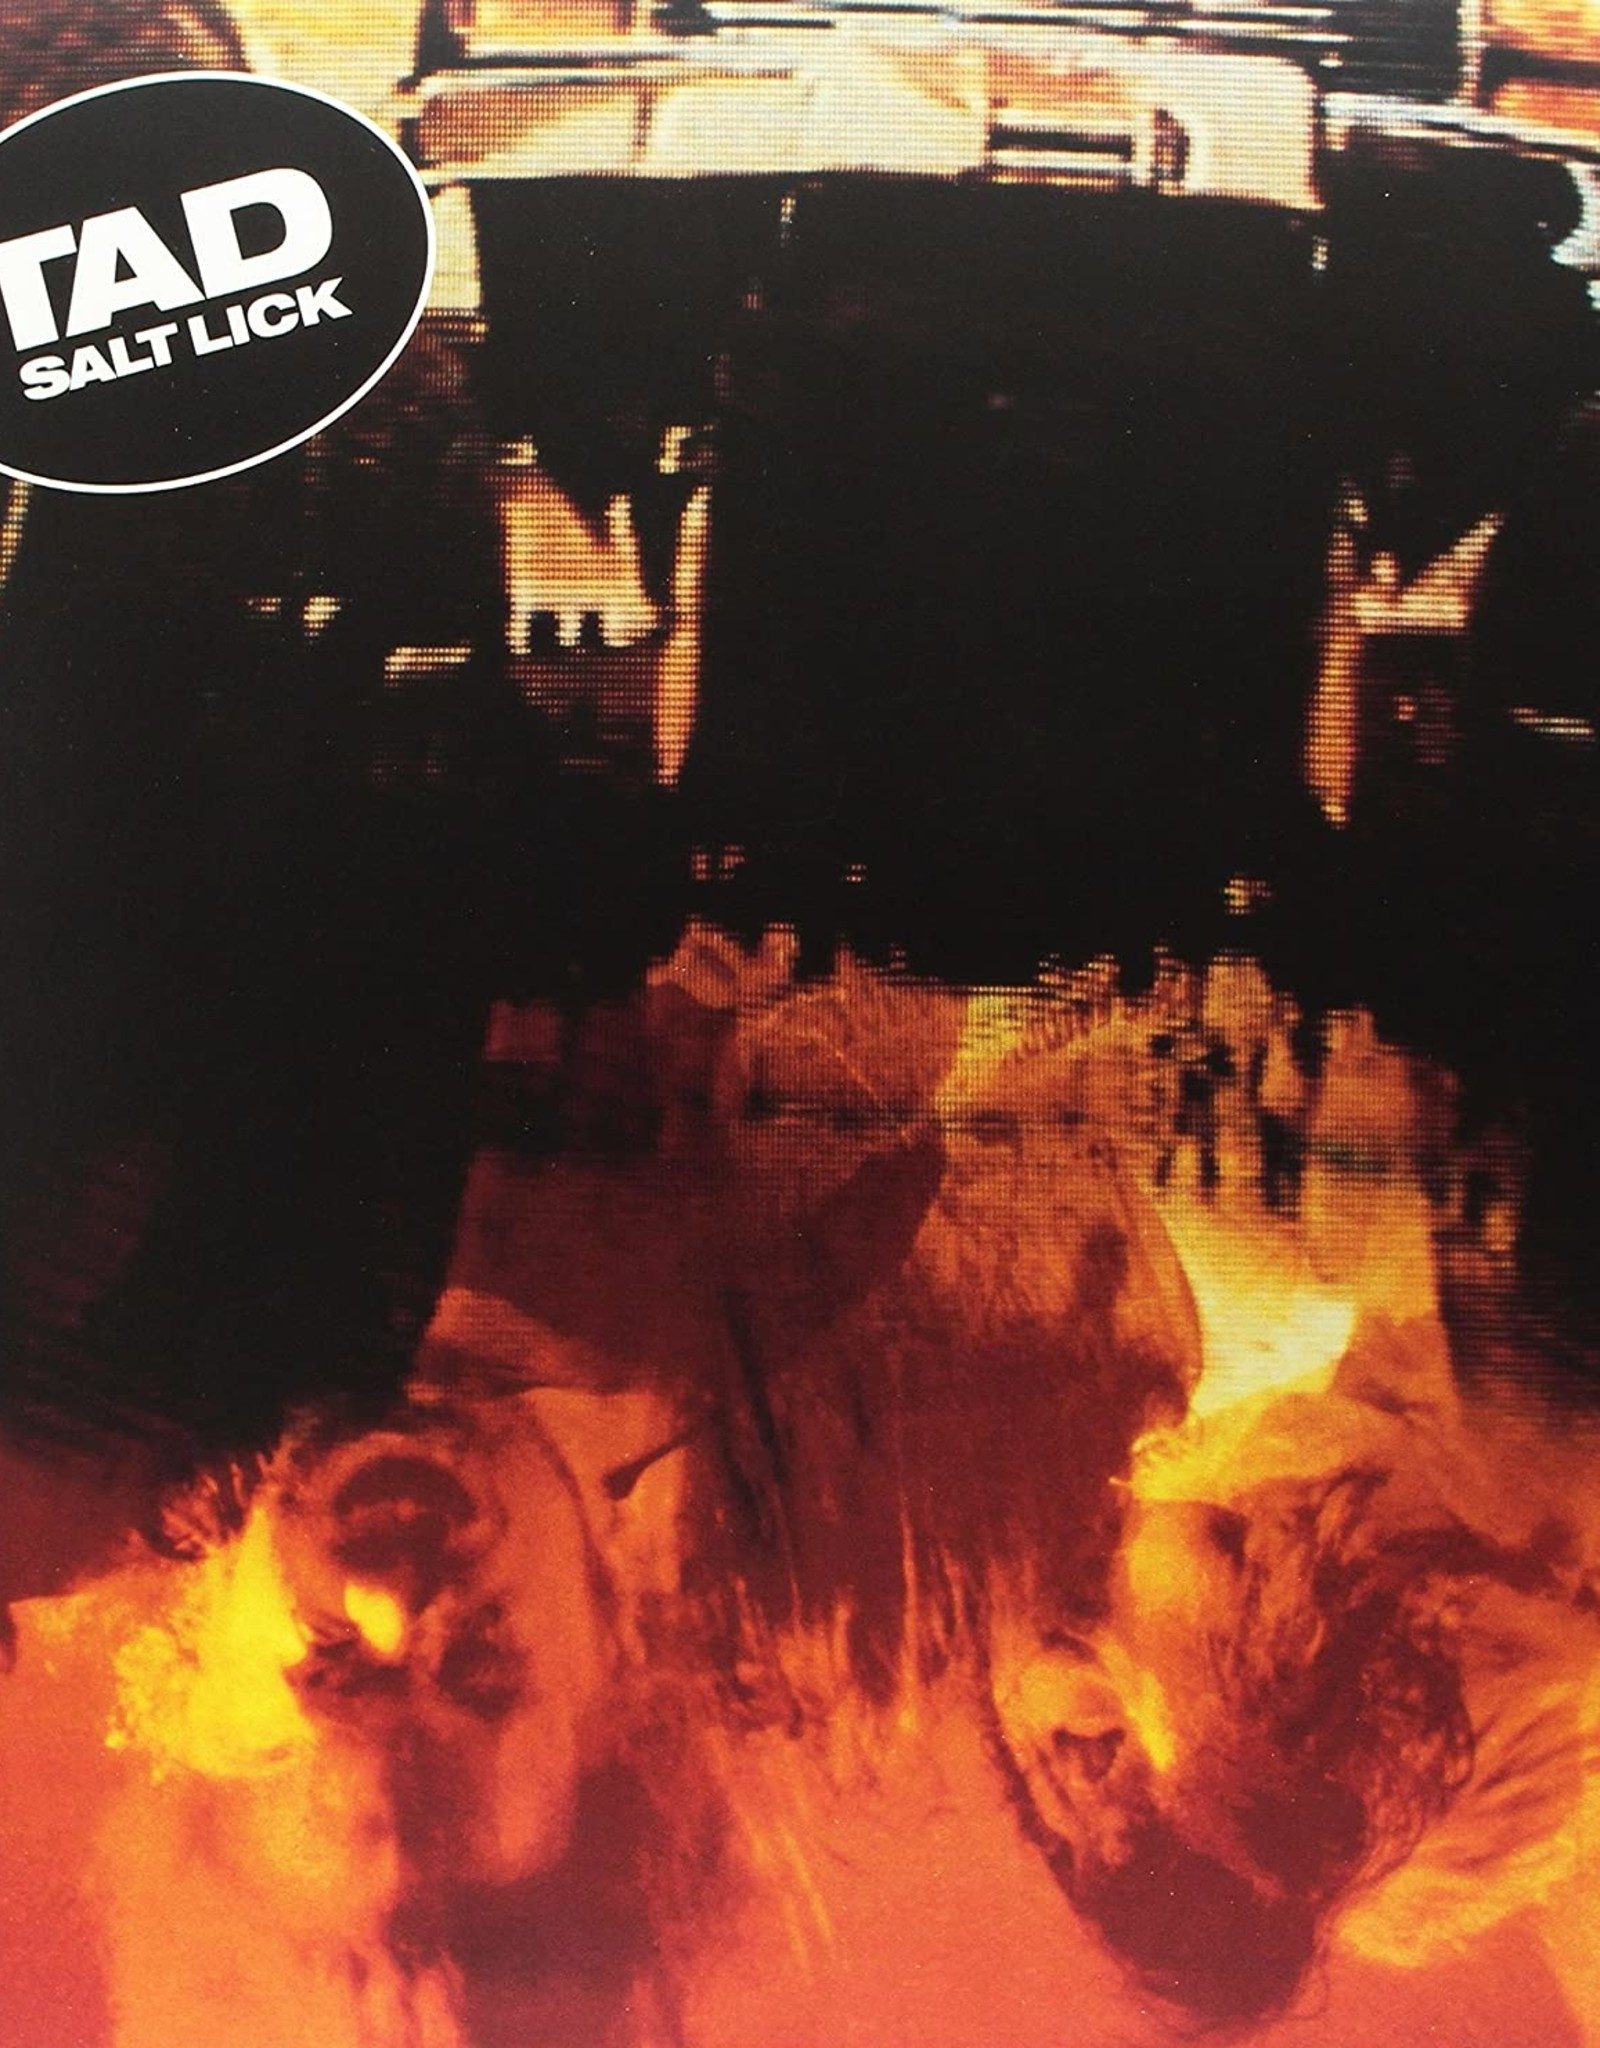 Tad - Salt Lick (Deluxe Edition) (Includes Download Card)